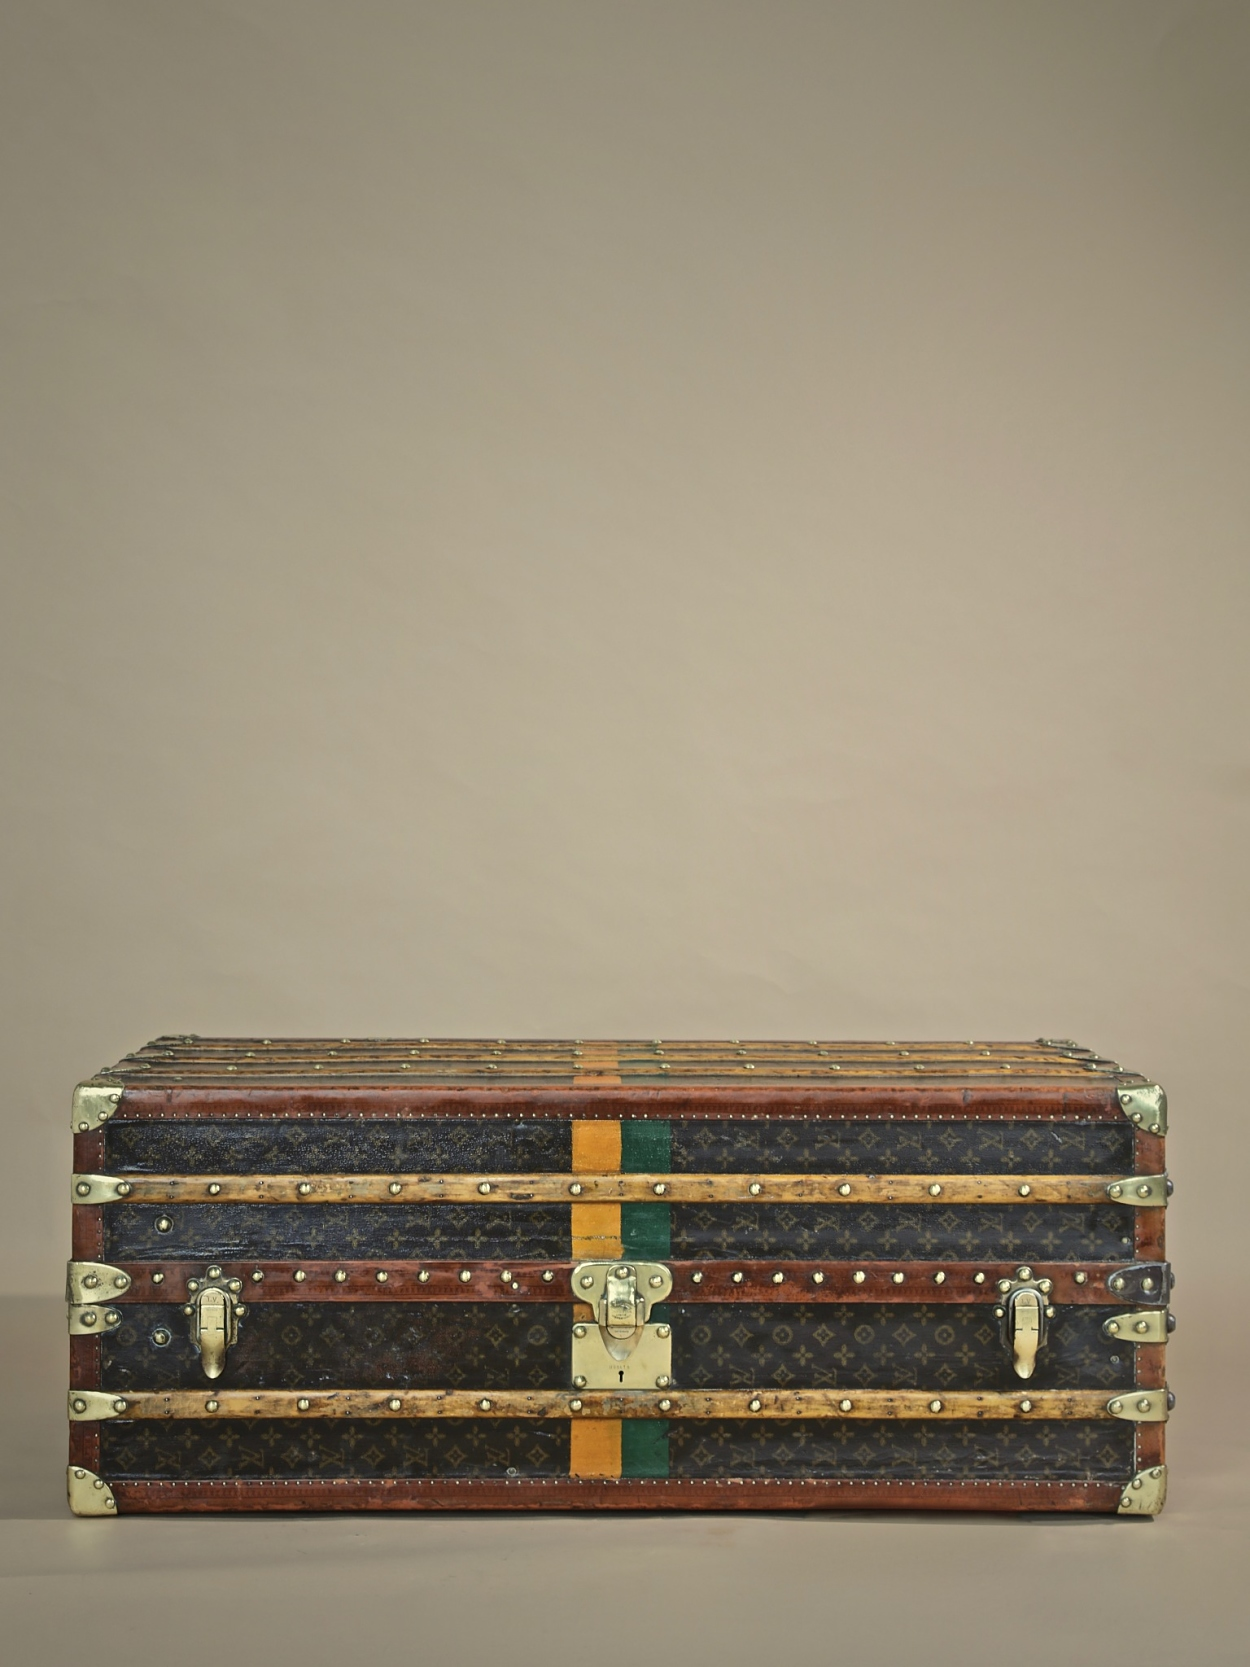 the-well-traveled-trunk-louis-vuitton-thumbnail-product-5737-1